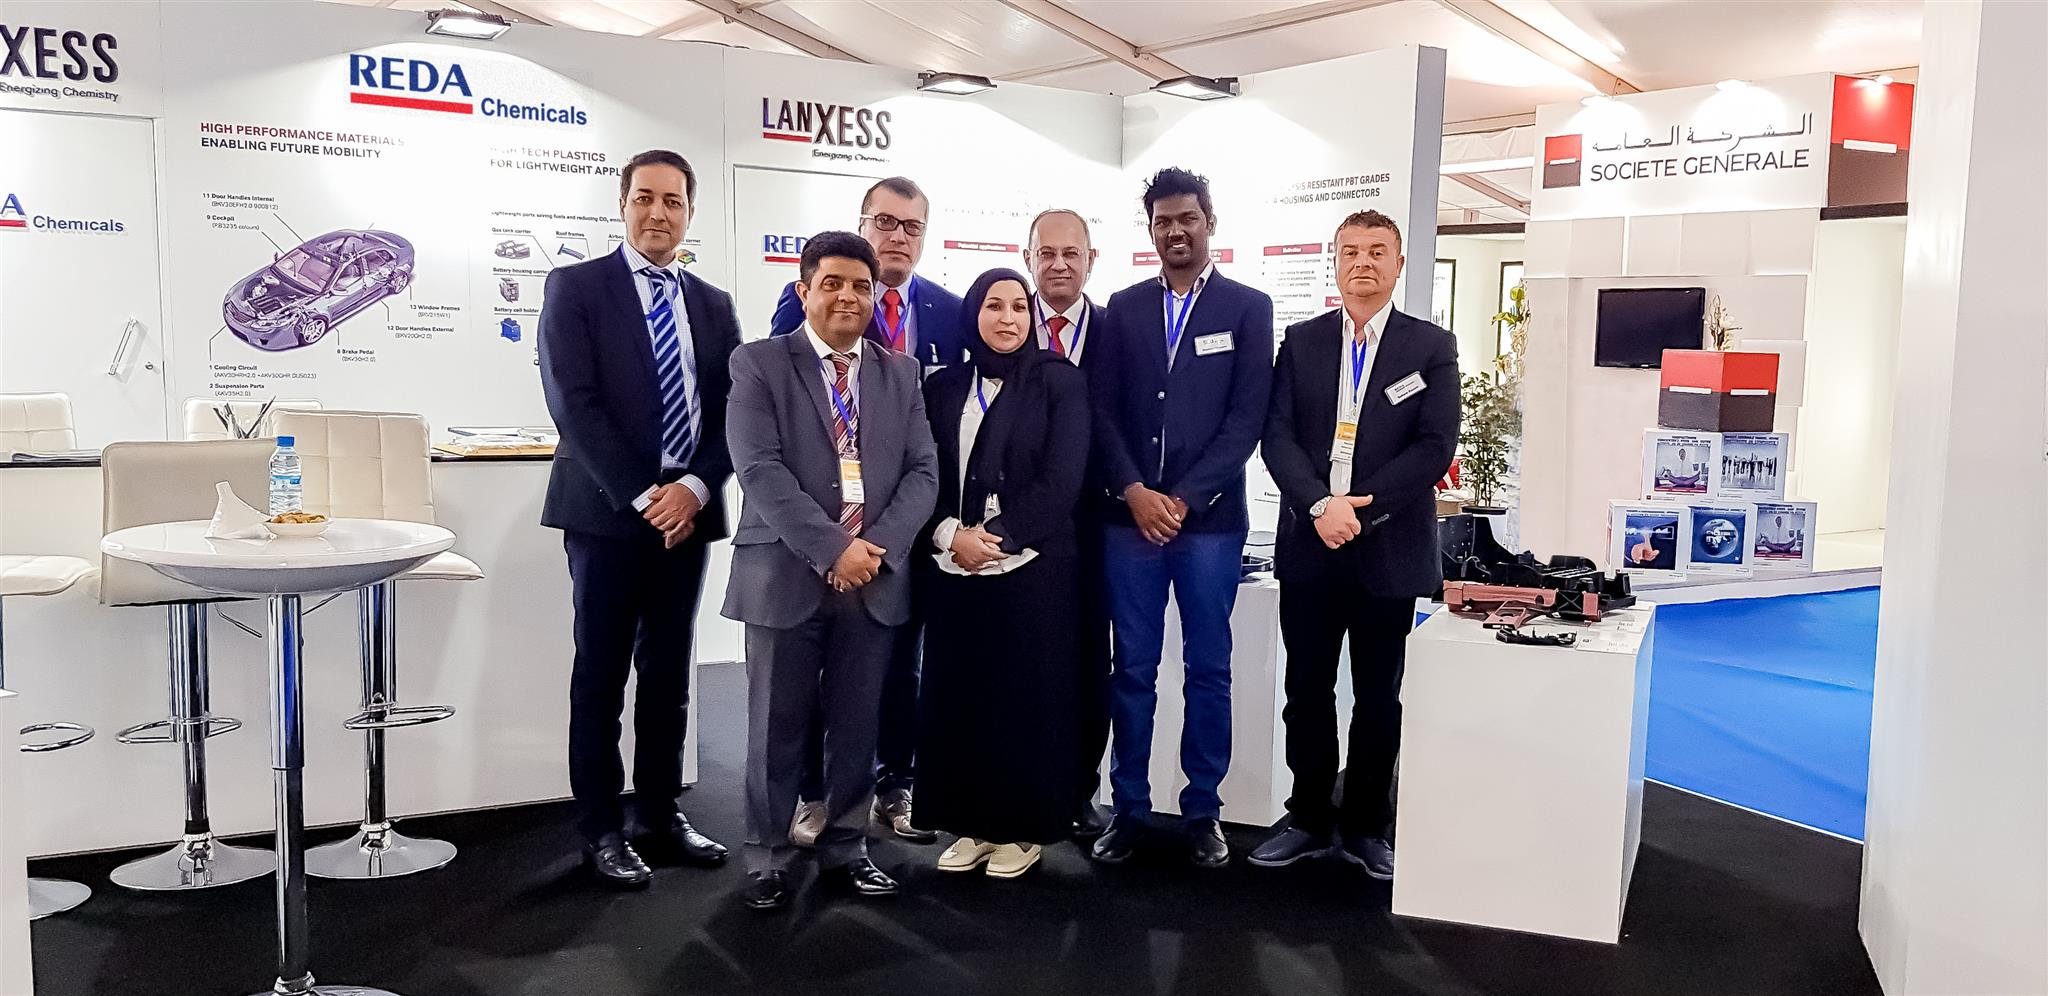 REDACHEM Maghreb & Lanxess Exhibition in Tangier – Morocco – REDA